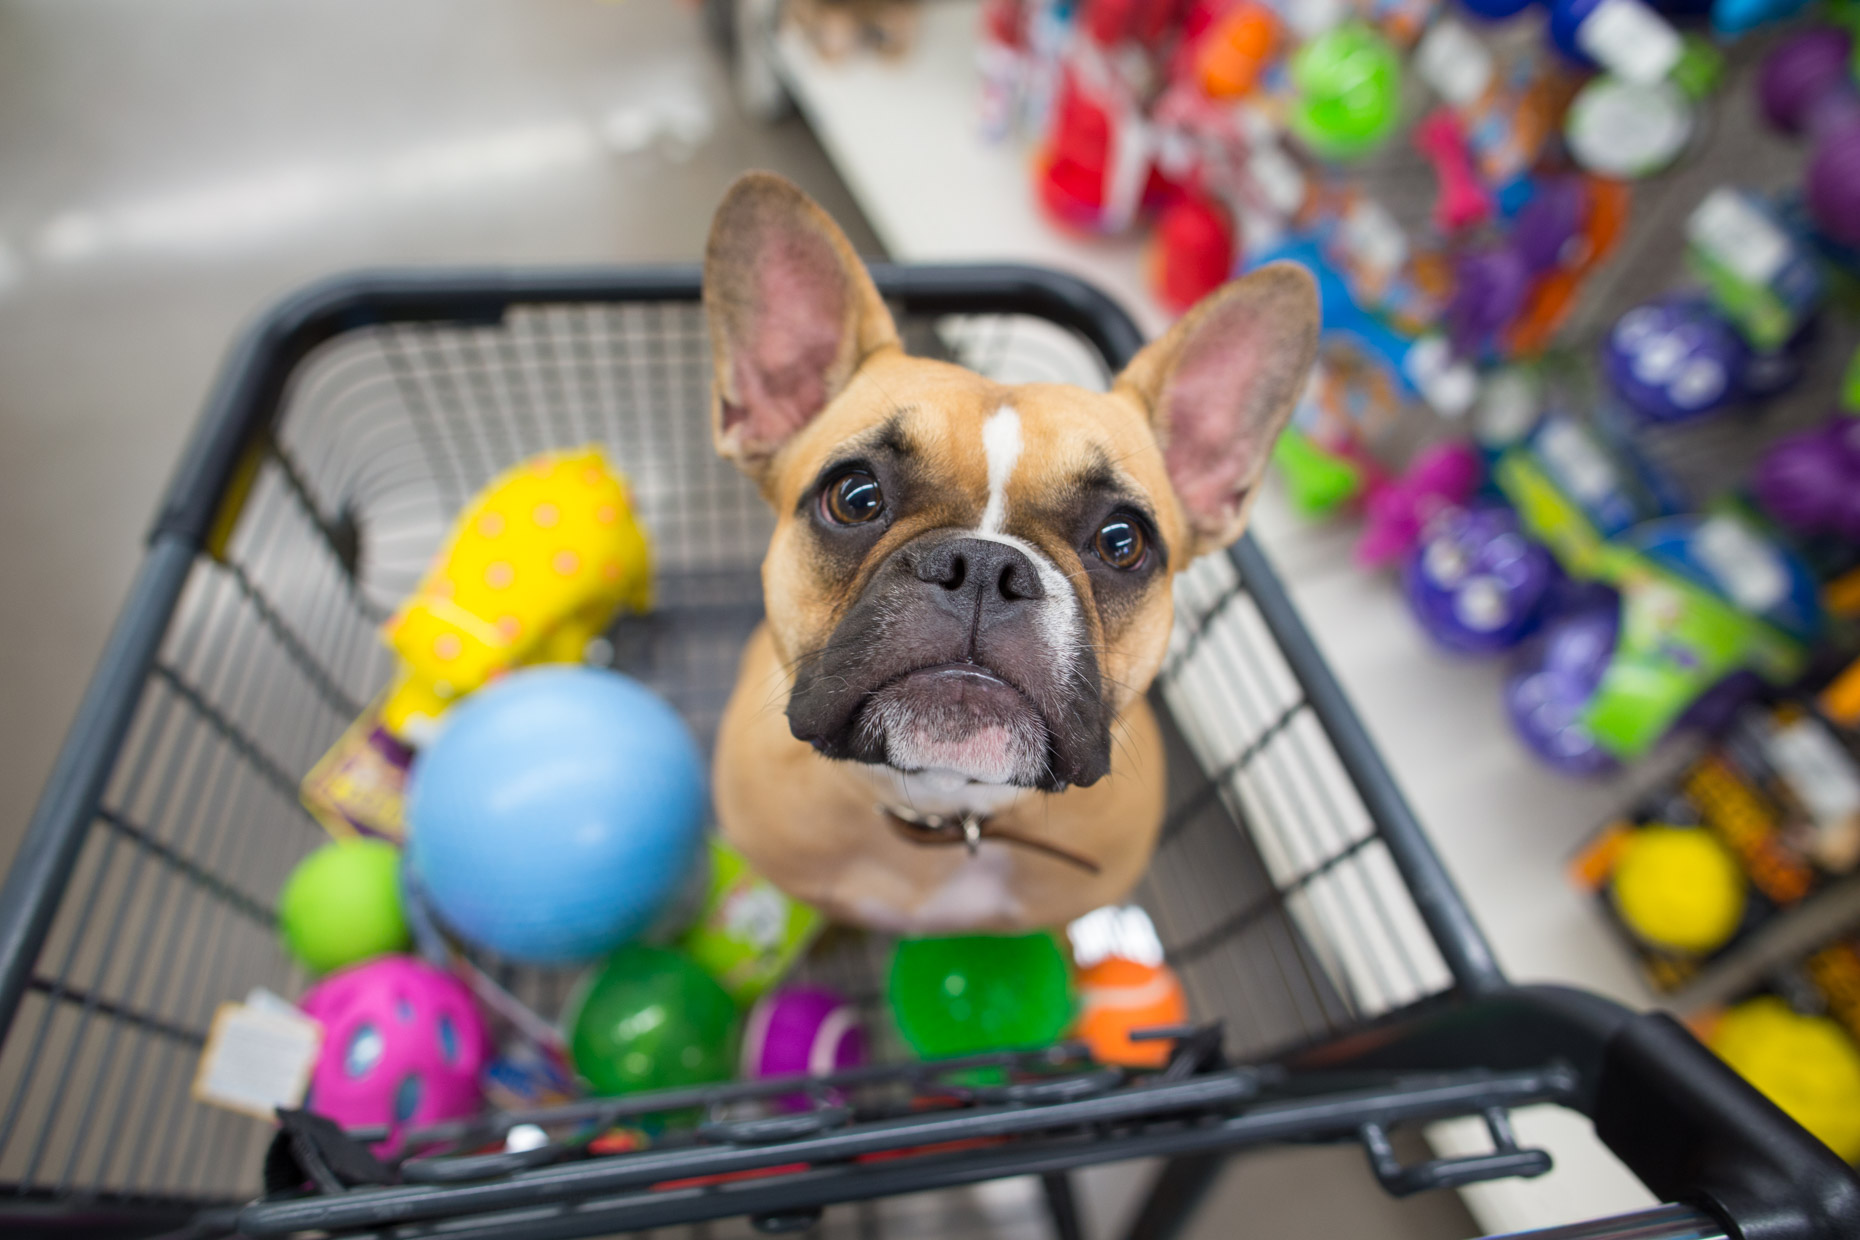 dog-in-shopping-cart-with-toys